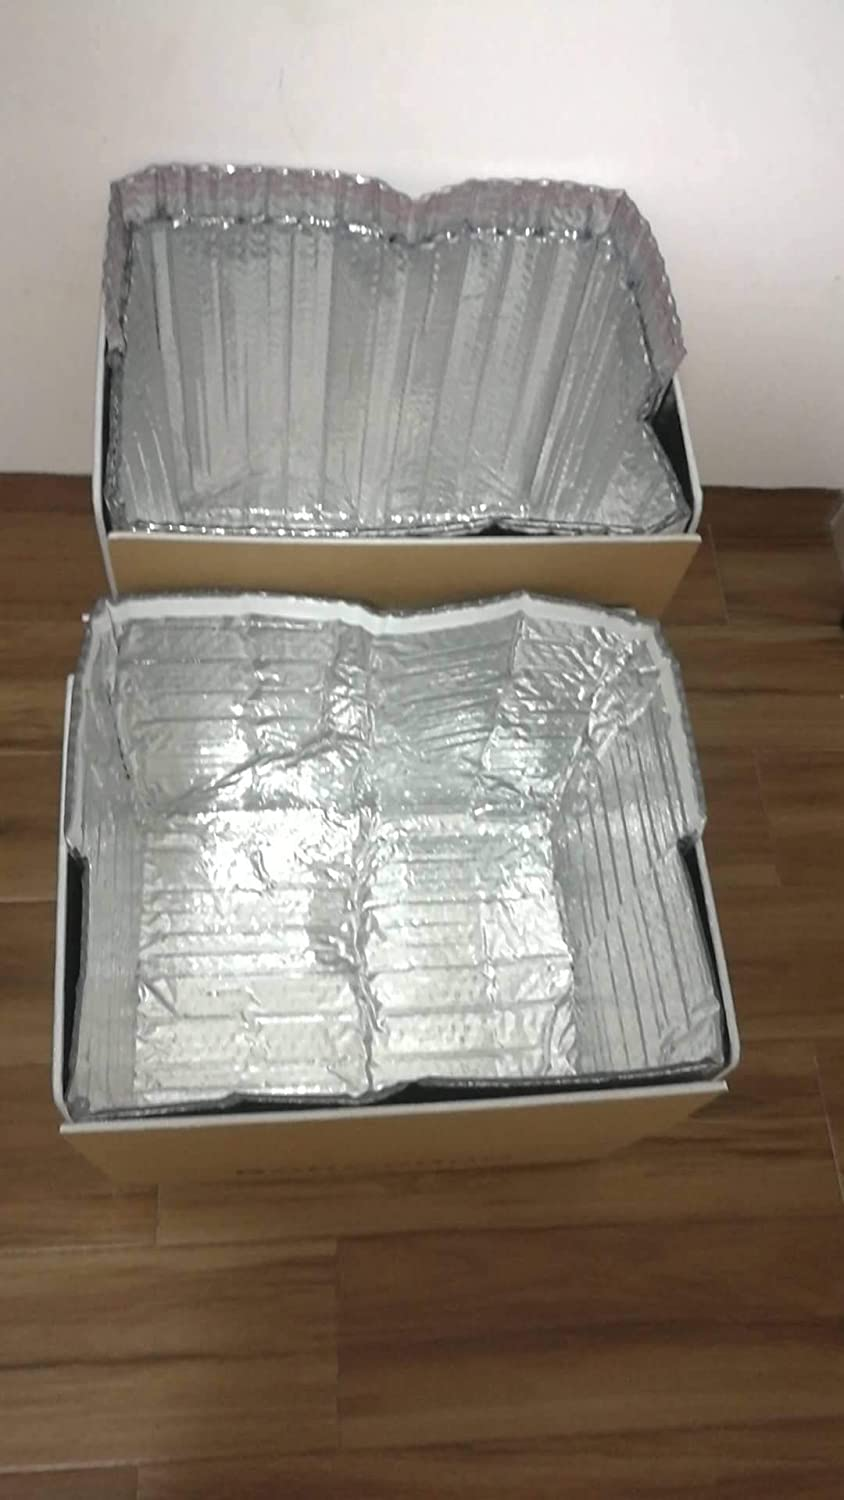 Thermal Box Liners 6x6x6 Metalized Box Liners.Pack of 5 Insulated Box Liners. Food Grade. Gusseted Bottom. Adhesive Strip. Mailing, Shipping, Packing, Packaging, Moving.